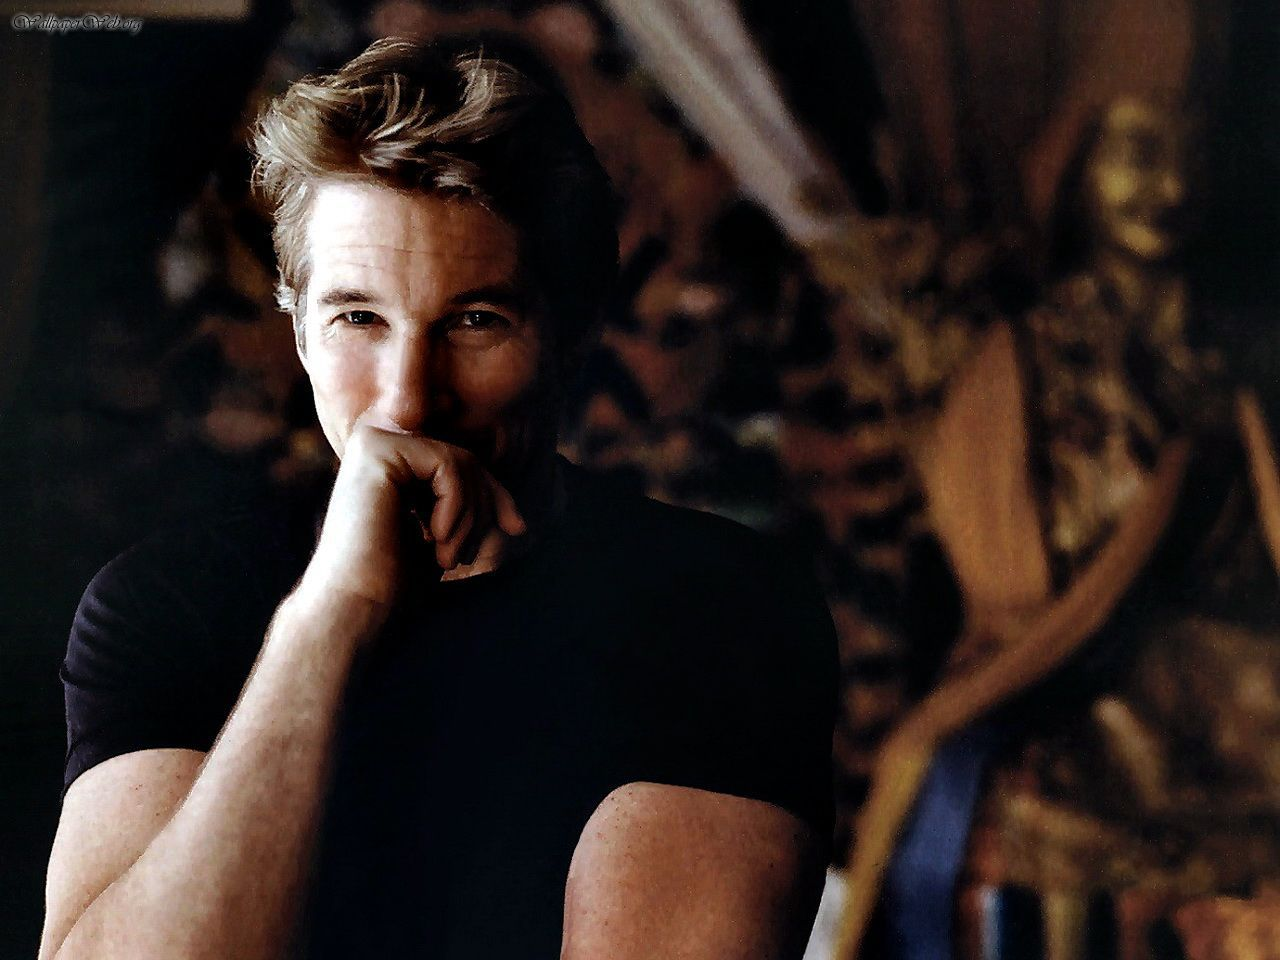 Male Celebrities: Richard Gere, picture nr. 26520